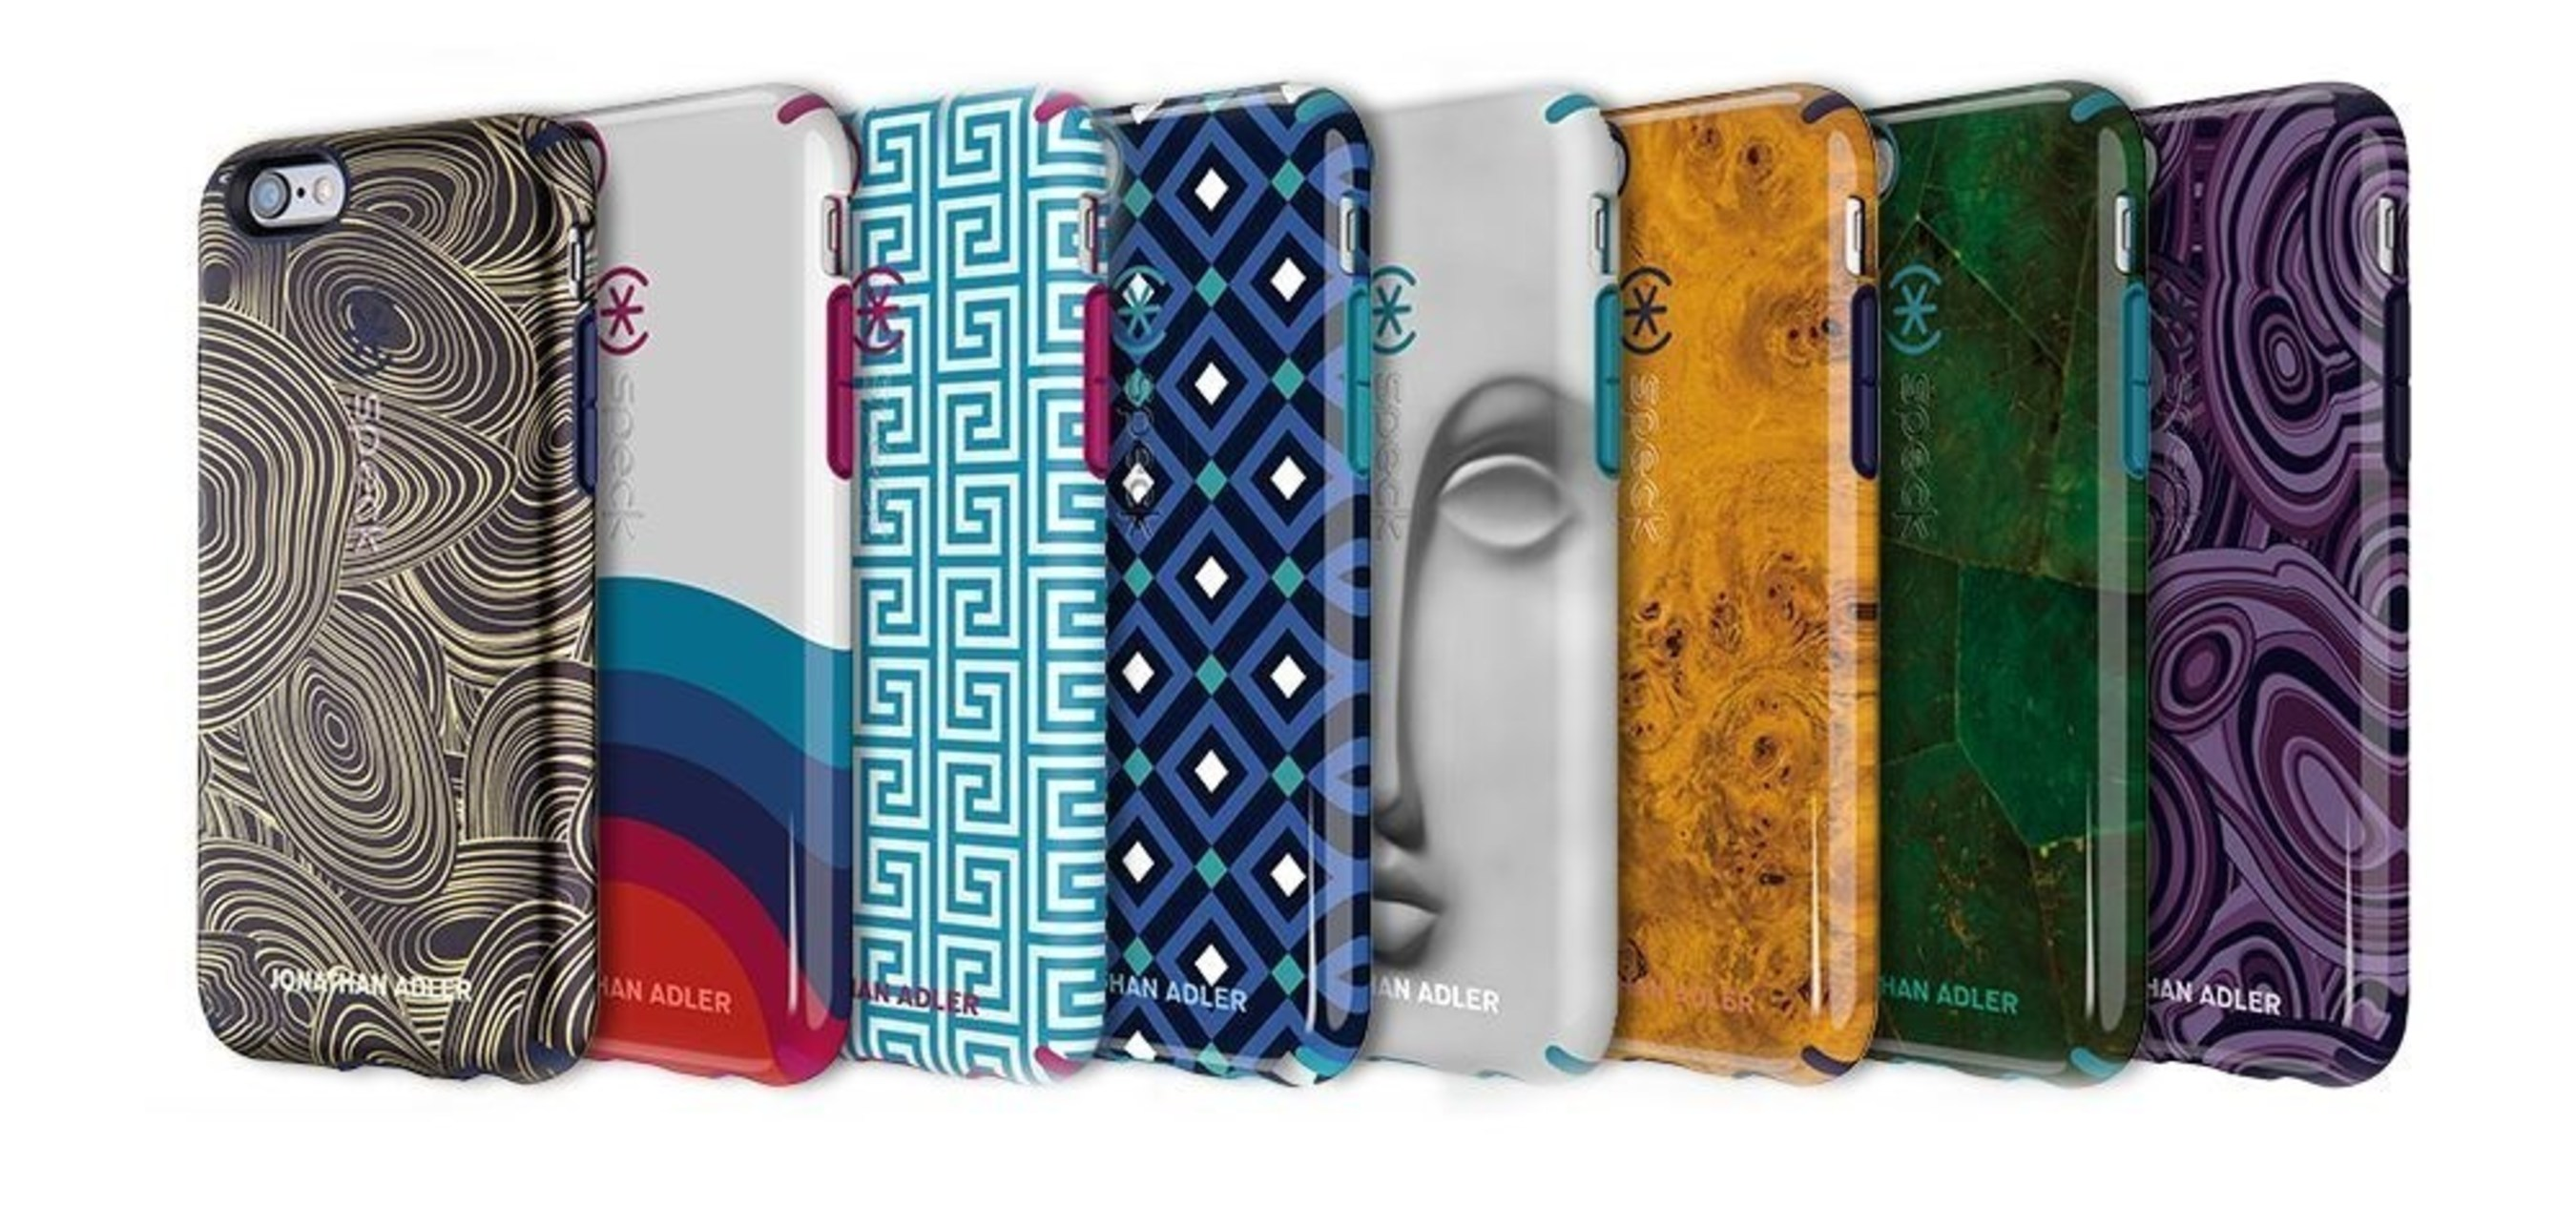 Speck and Renowned Potter, Designer, and Author Jonathan Adler Release Collection of Protective Cases for New iPhone